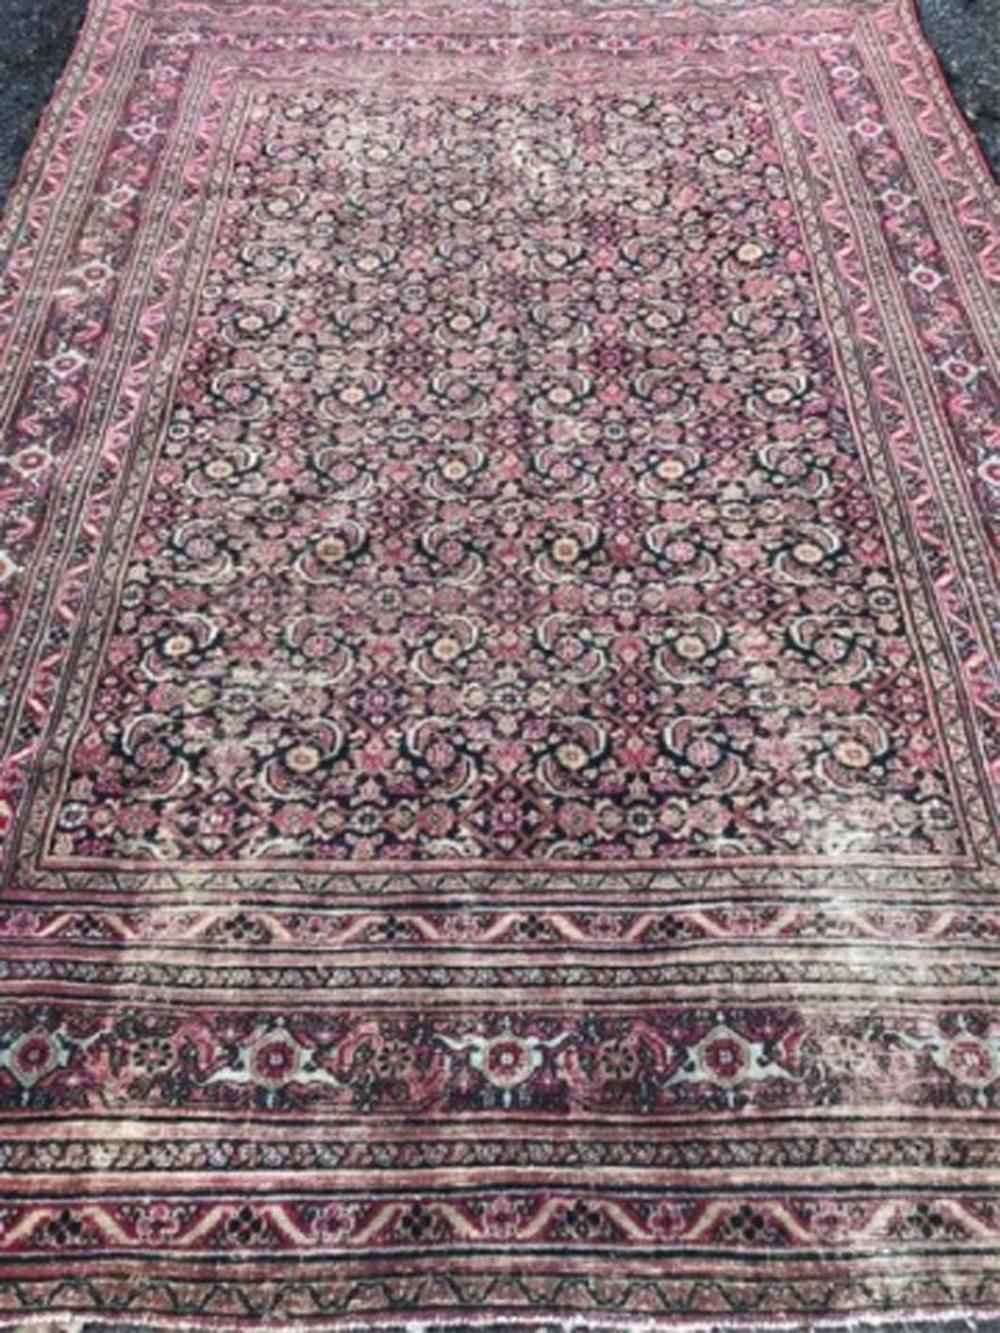 Antique 19th C Hand Knotted Persian Carpet